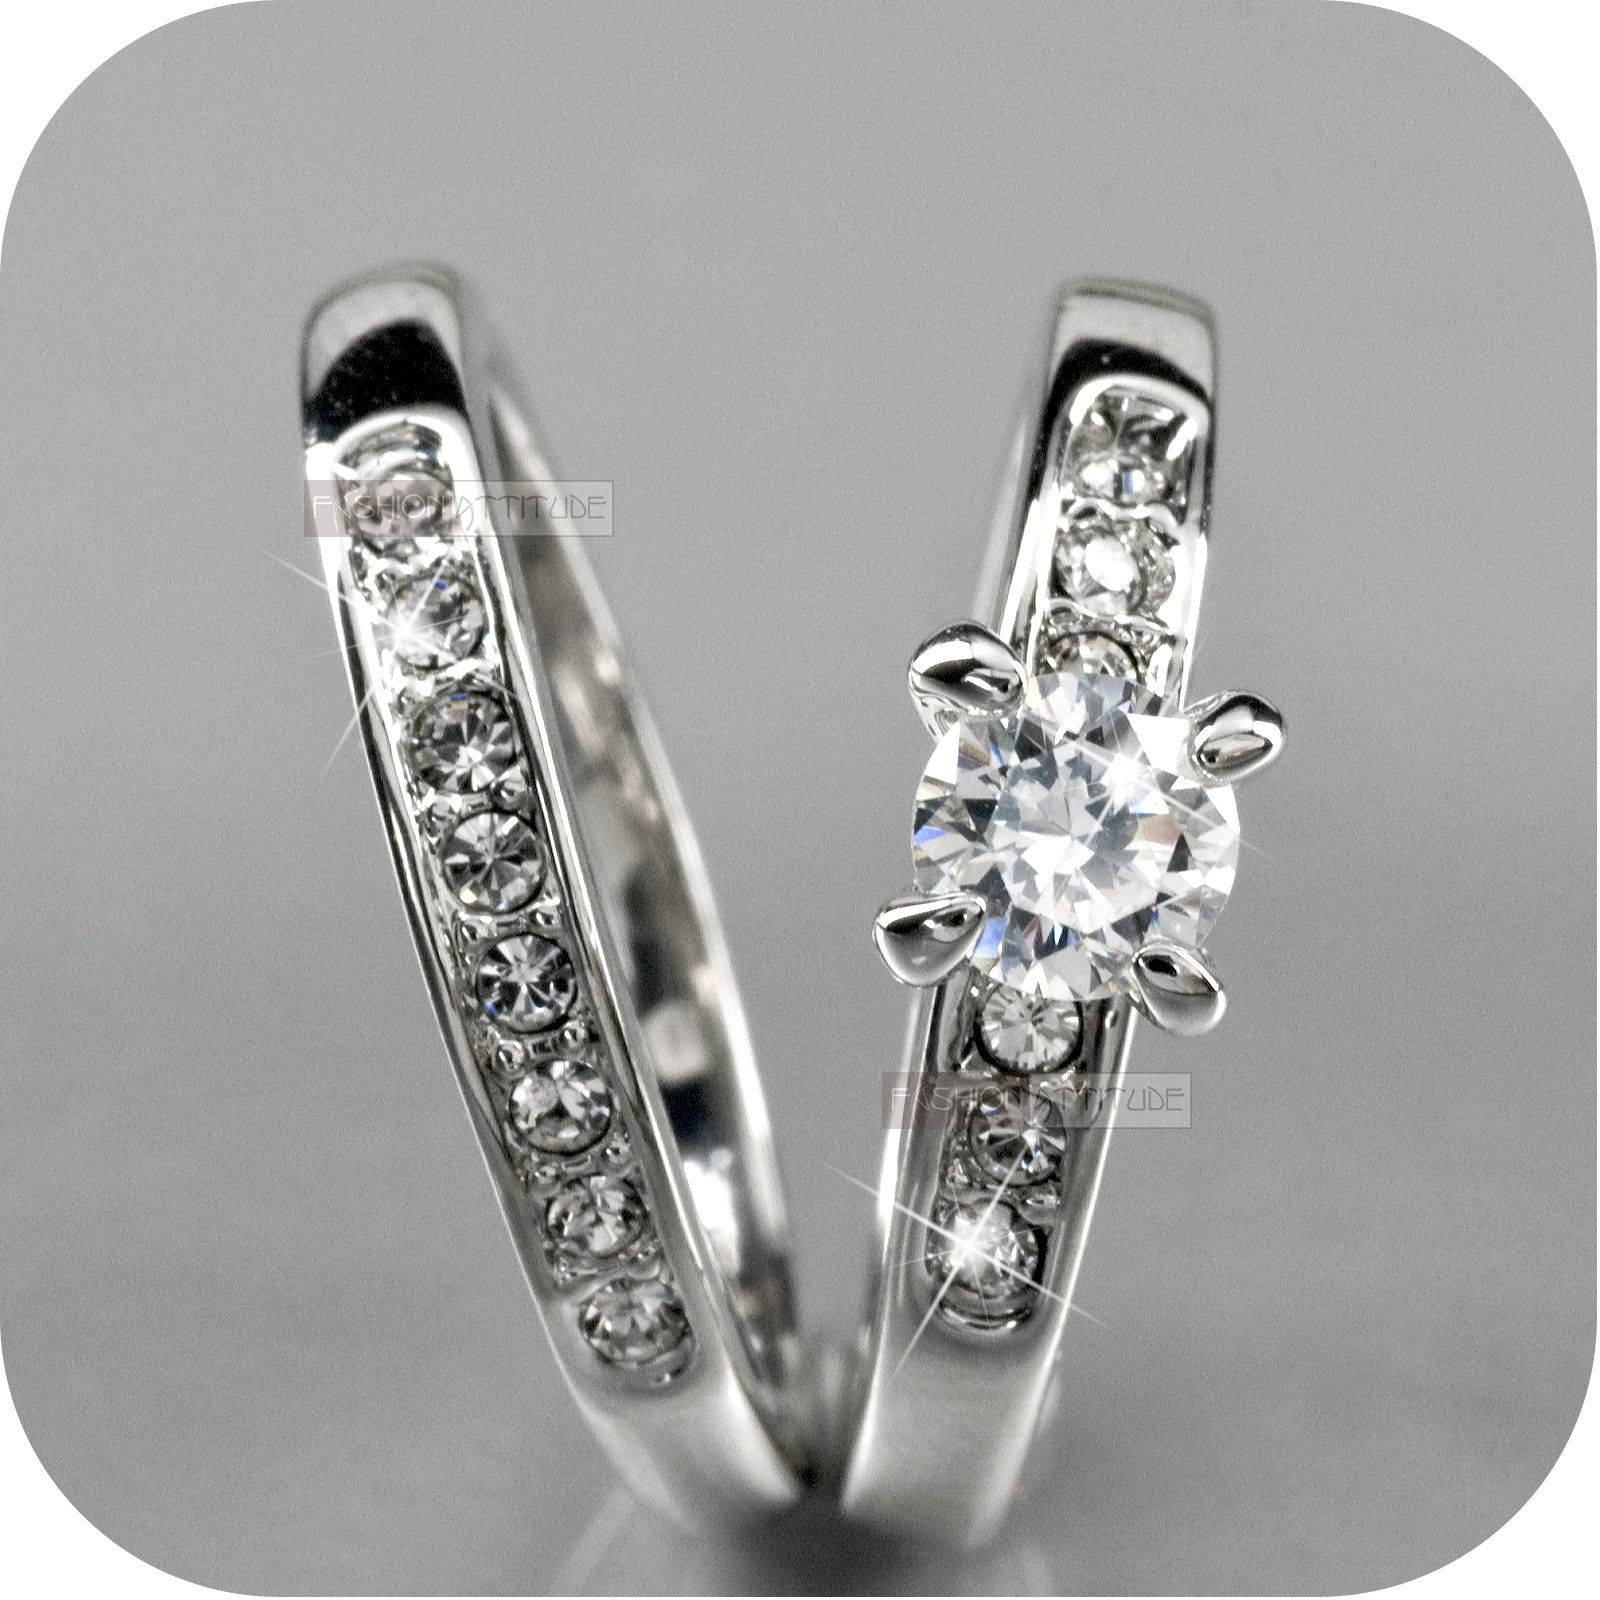 18K White Gold Gp Made With Swarovski Crystal Wedding Ring Set Us Regarding Swarovski Crystal Wedding Rings (View 3 of 15)